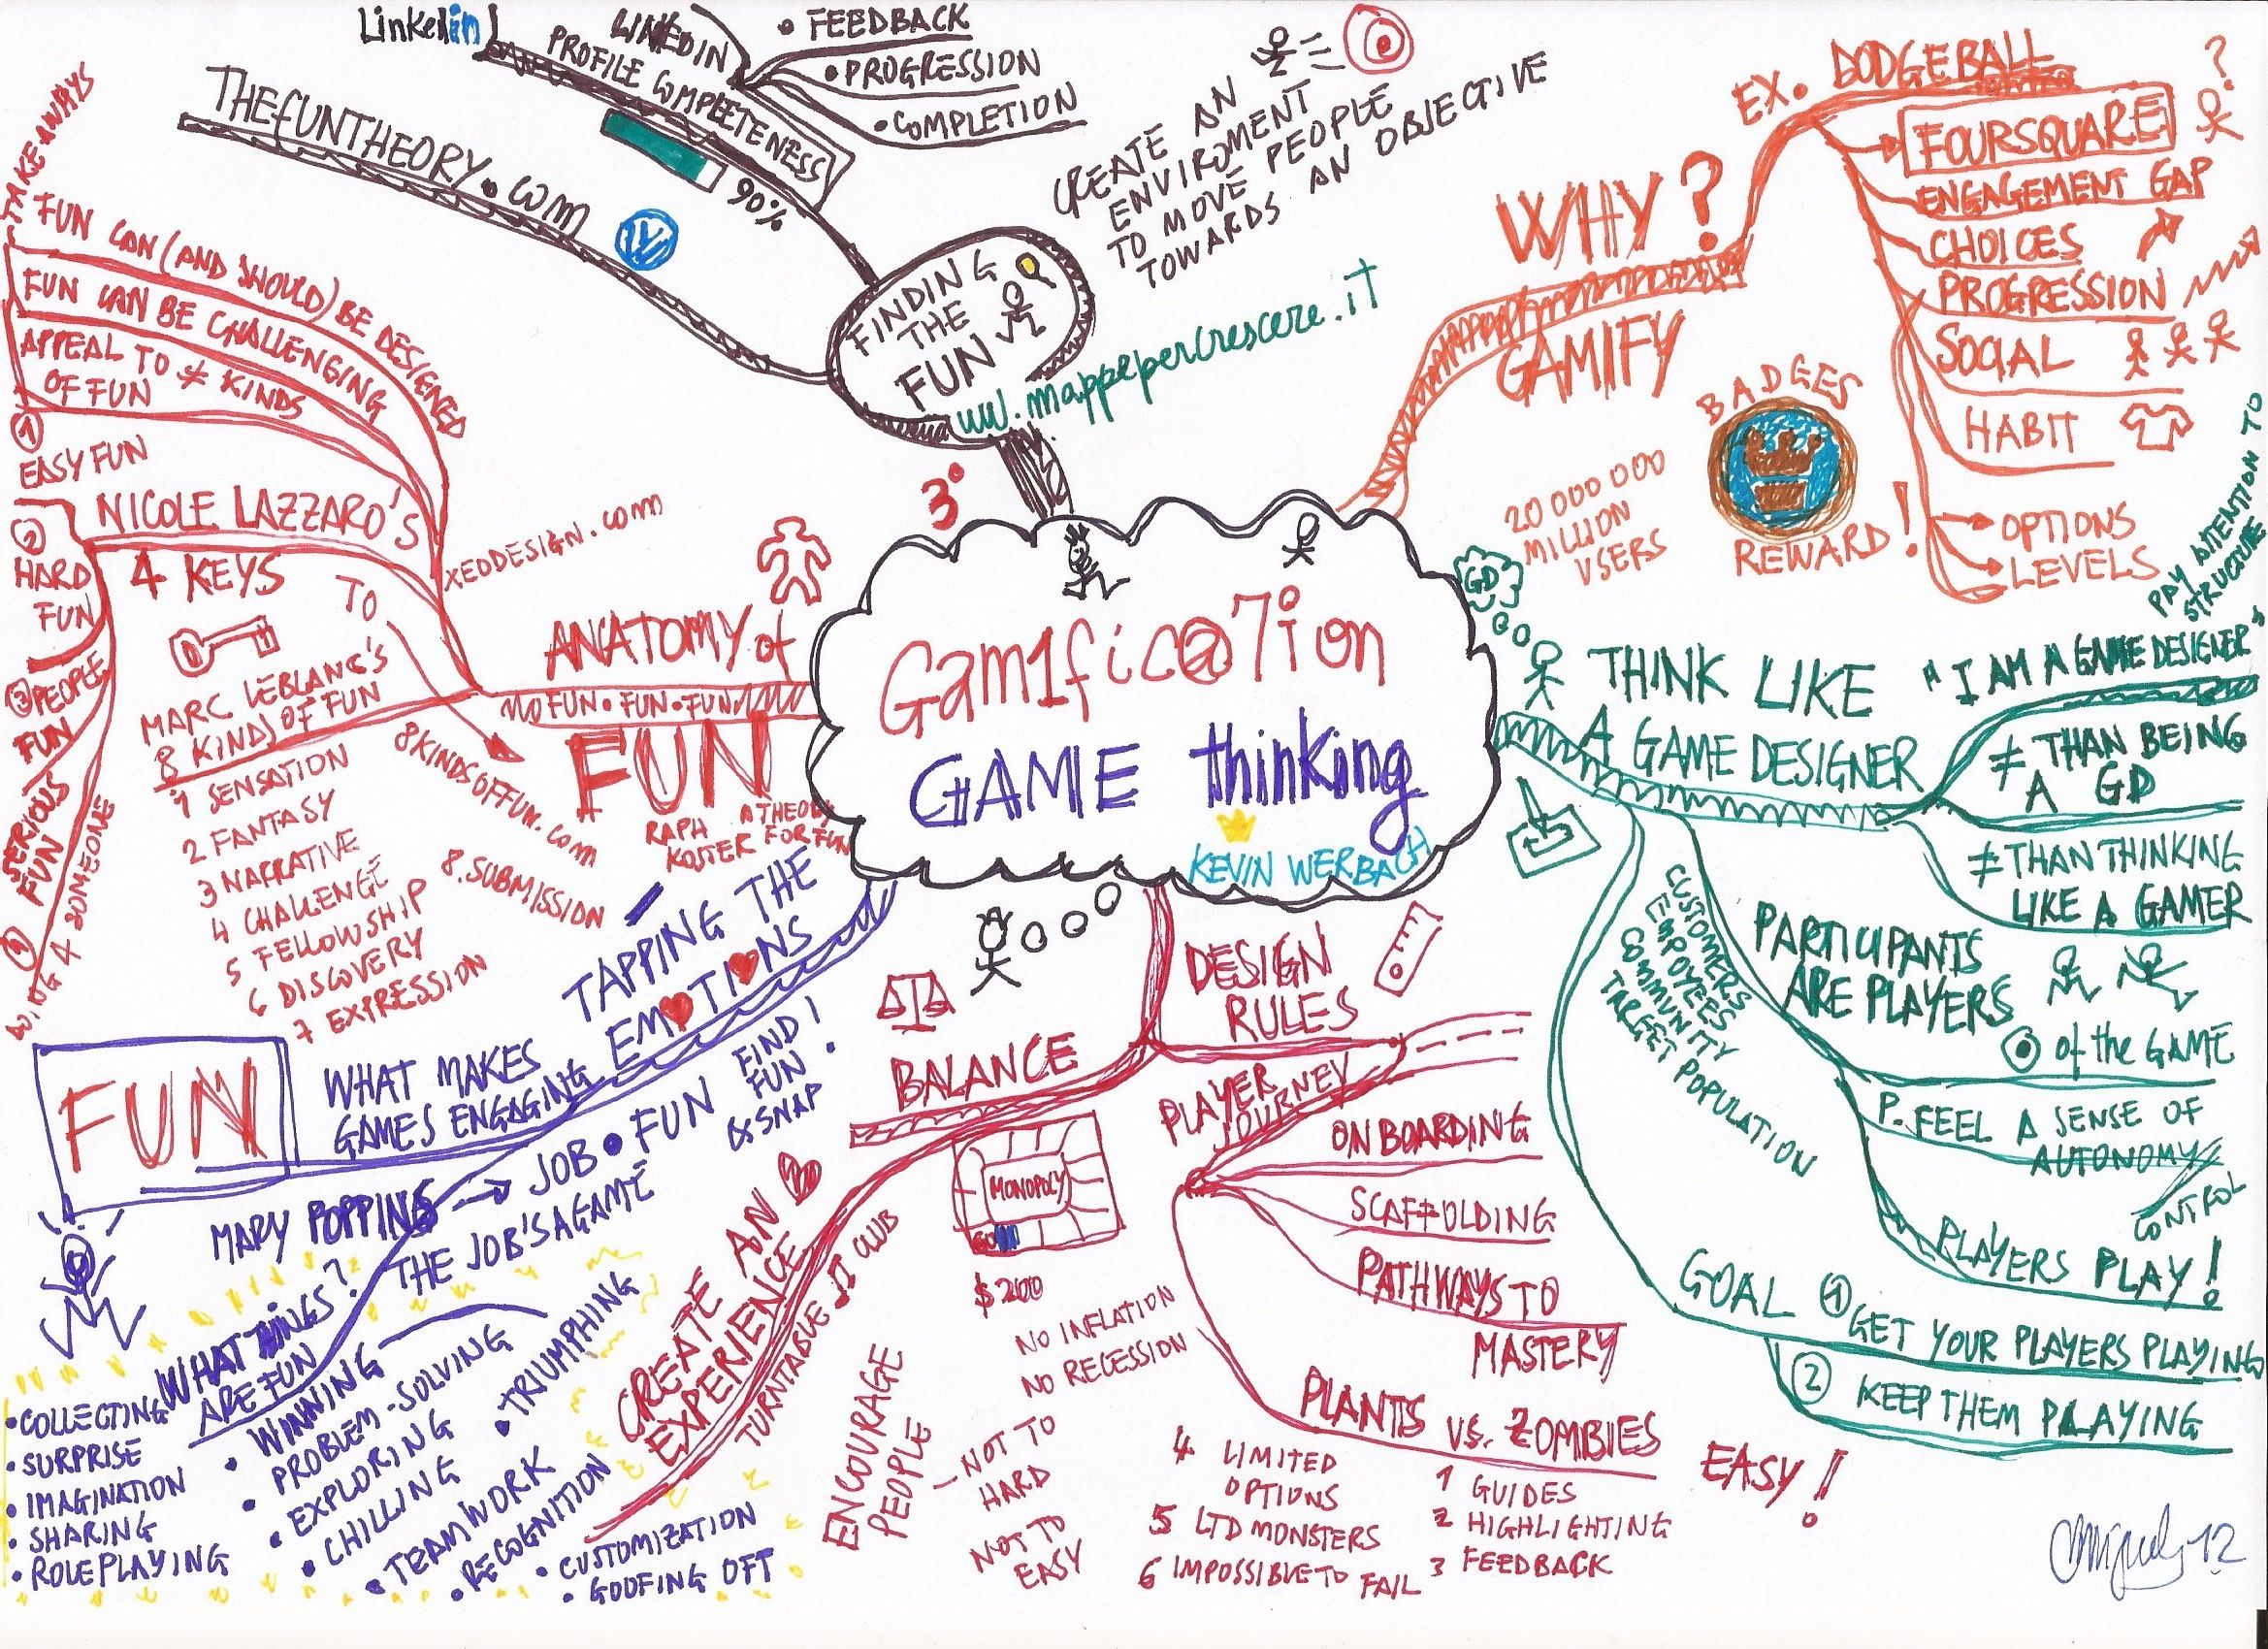 Think Like a Game Designer. Mind map created by Miguel Scordamaglia on